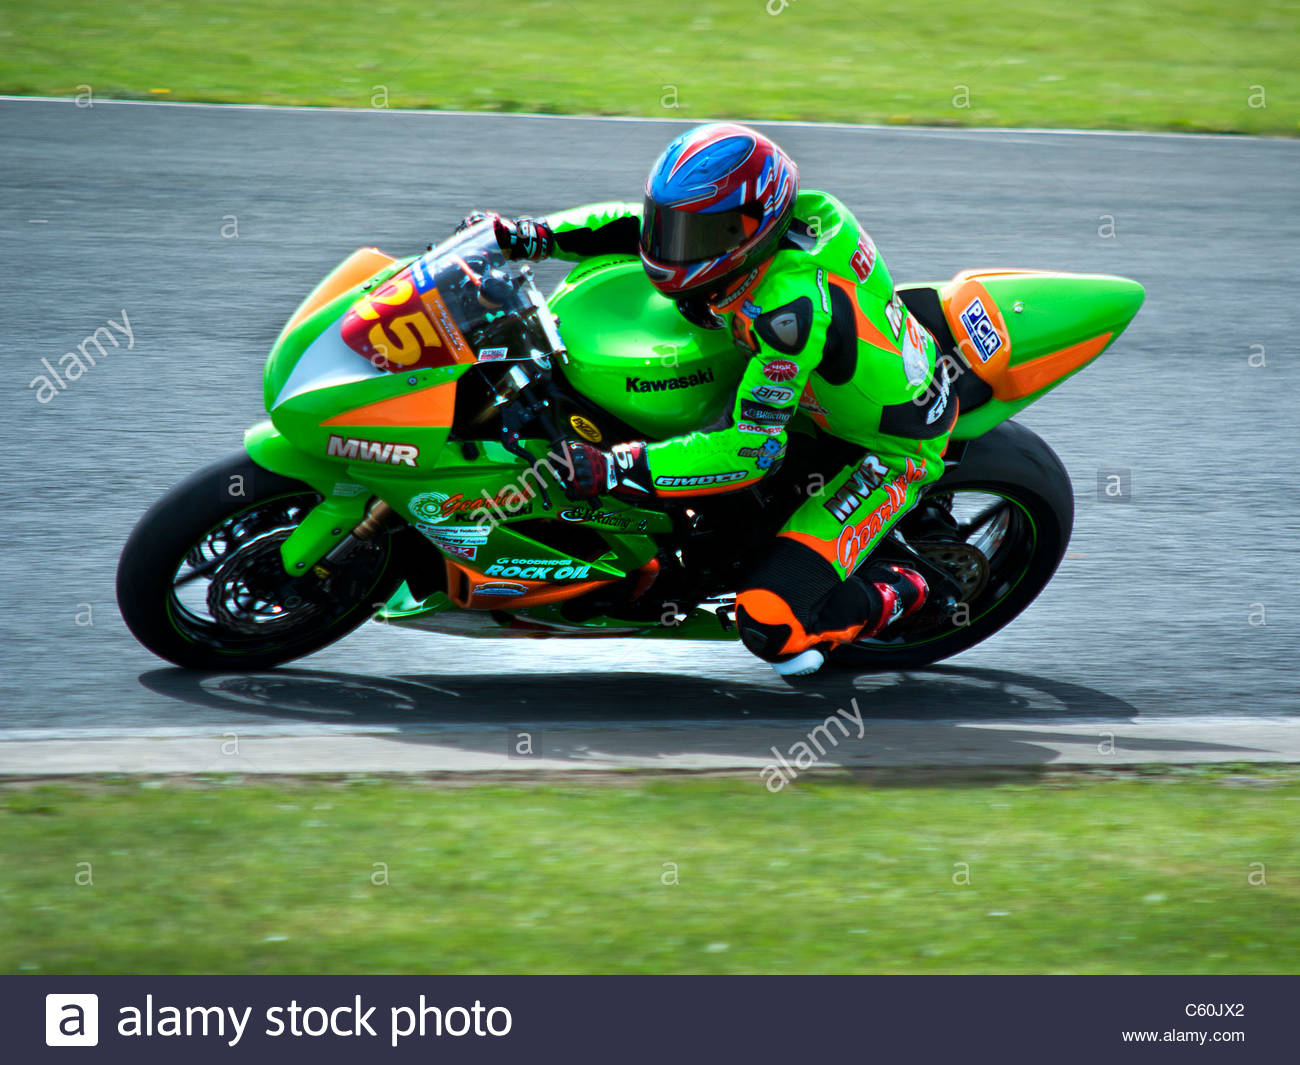 Side view of a rider in the British superbike races, racing at croft circuit, Darlington,England,UK. - Stock Image